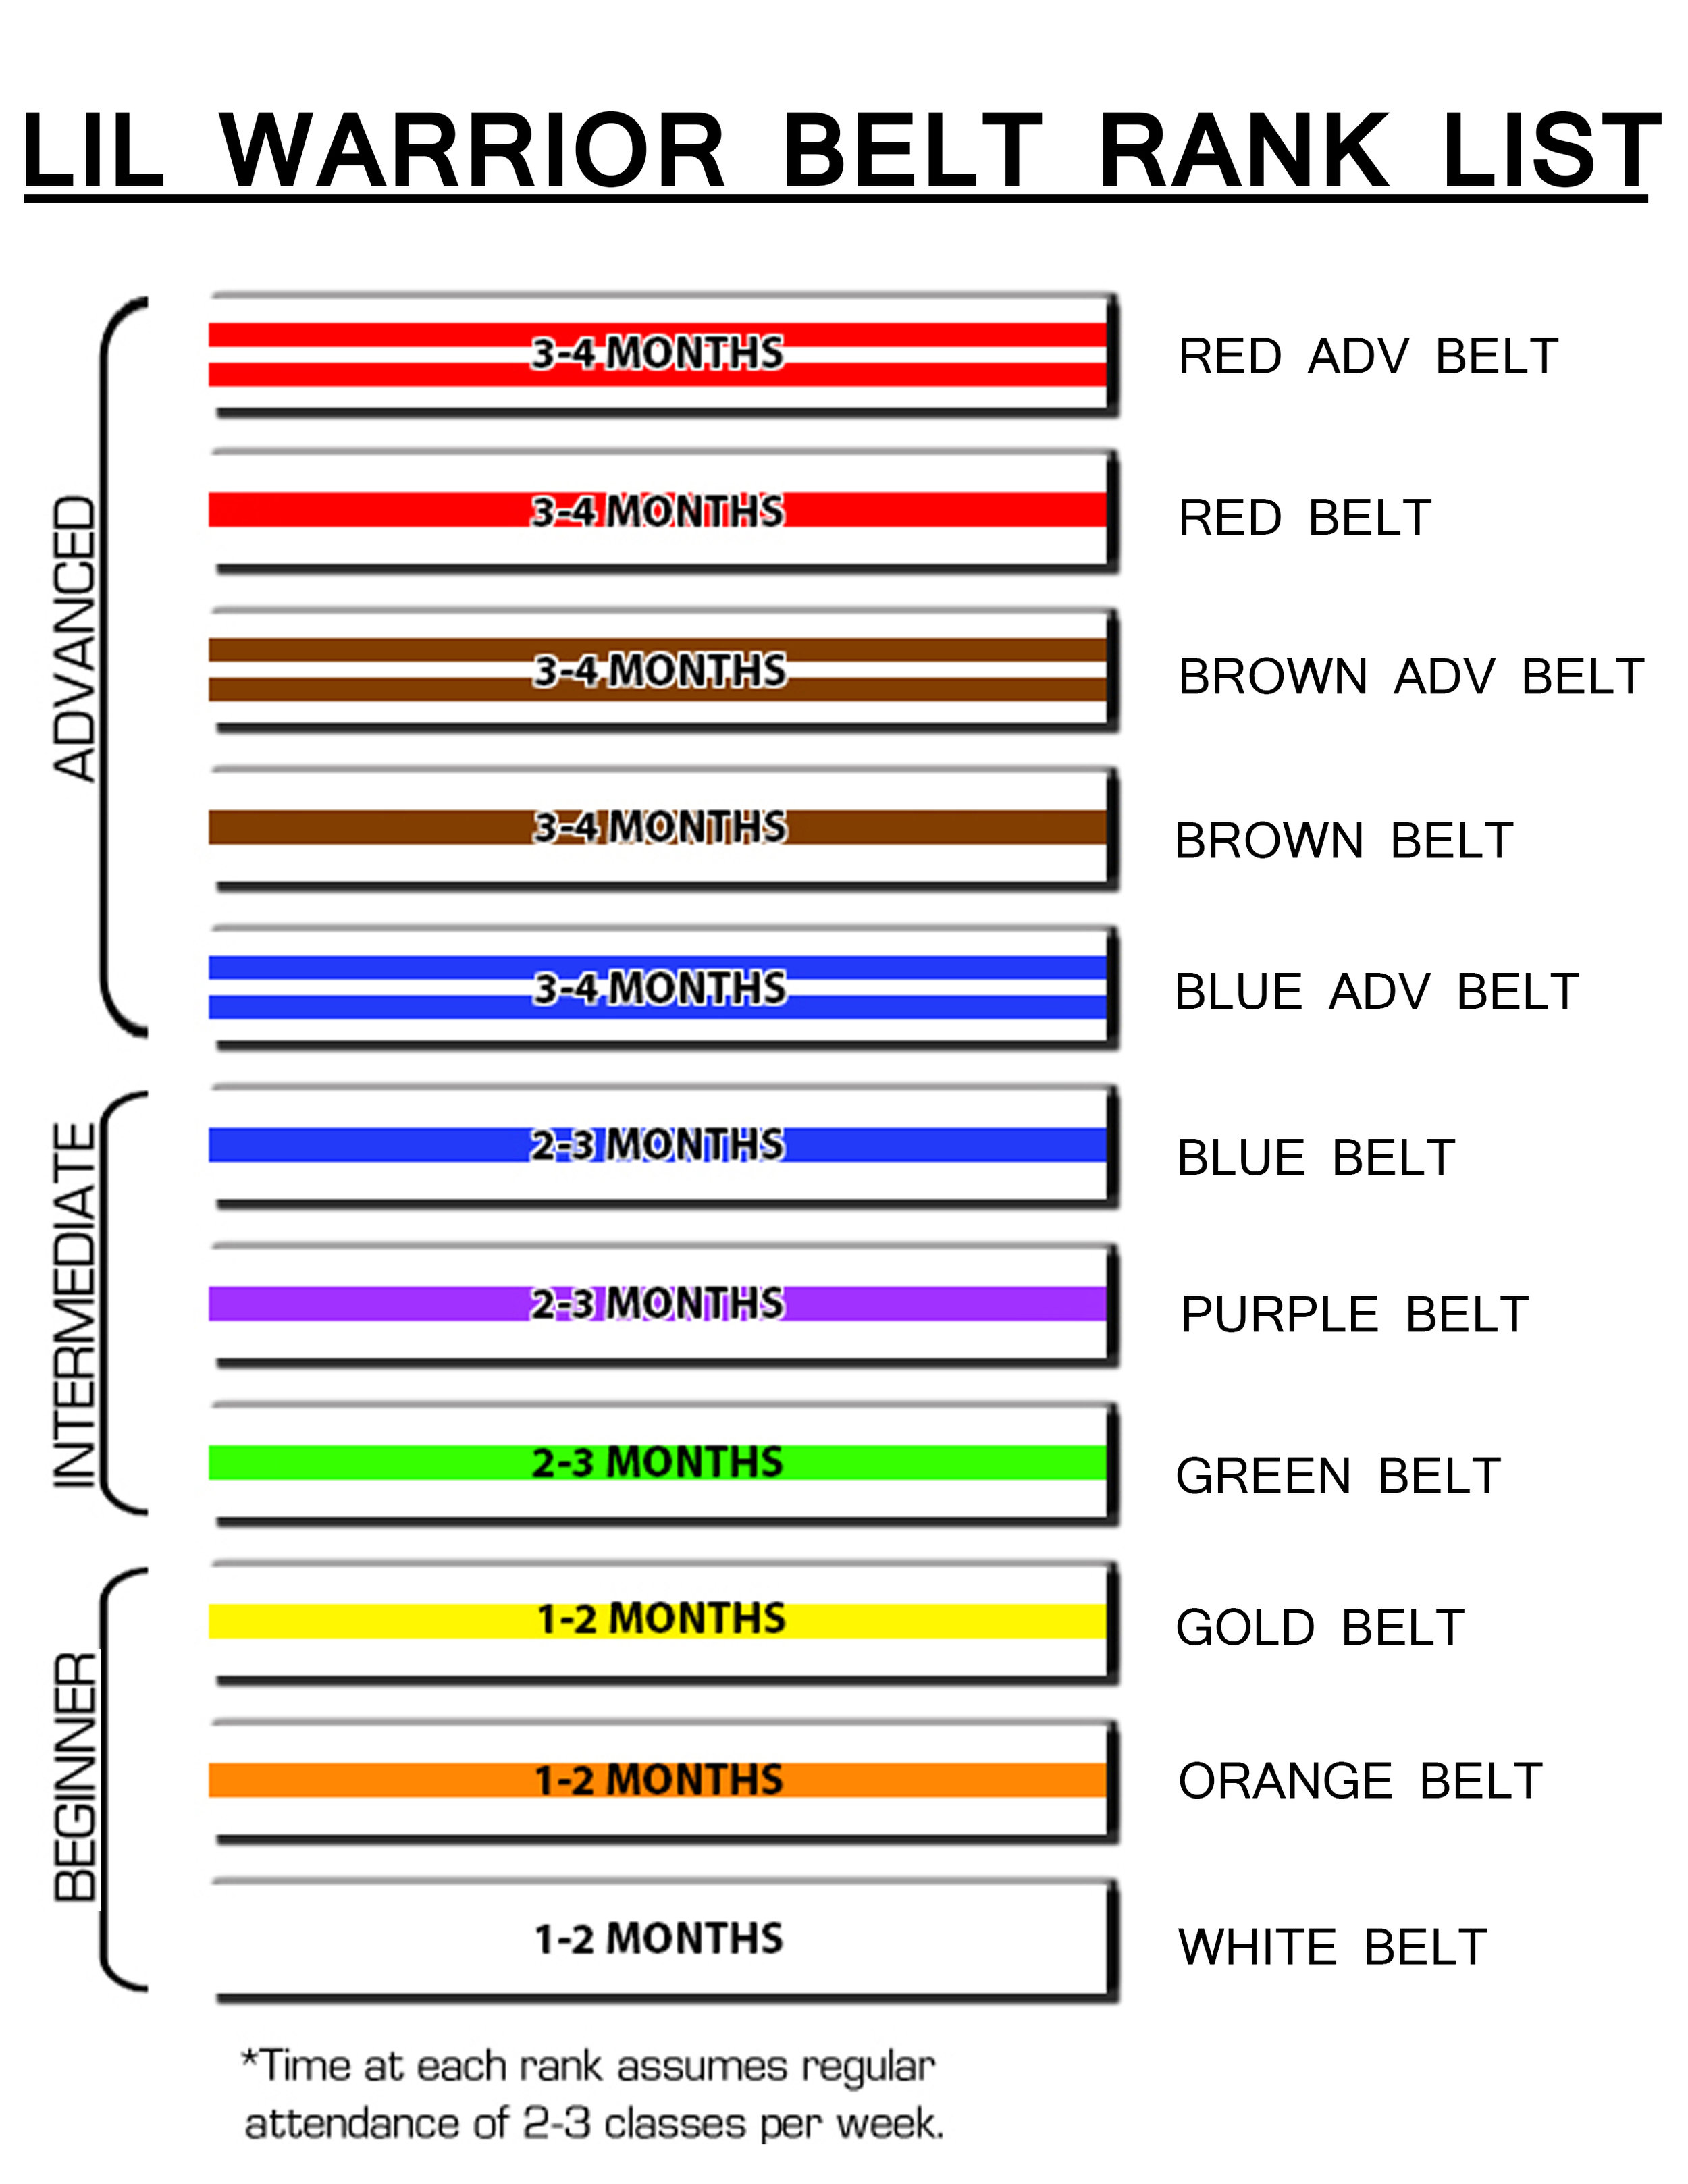 LW BELT RANK LIST.jpg